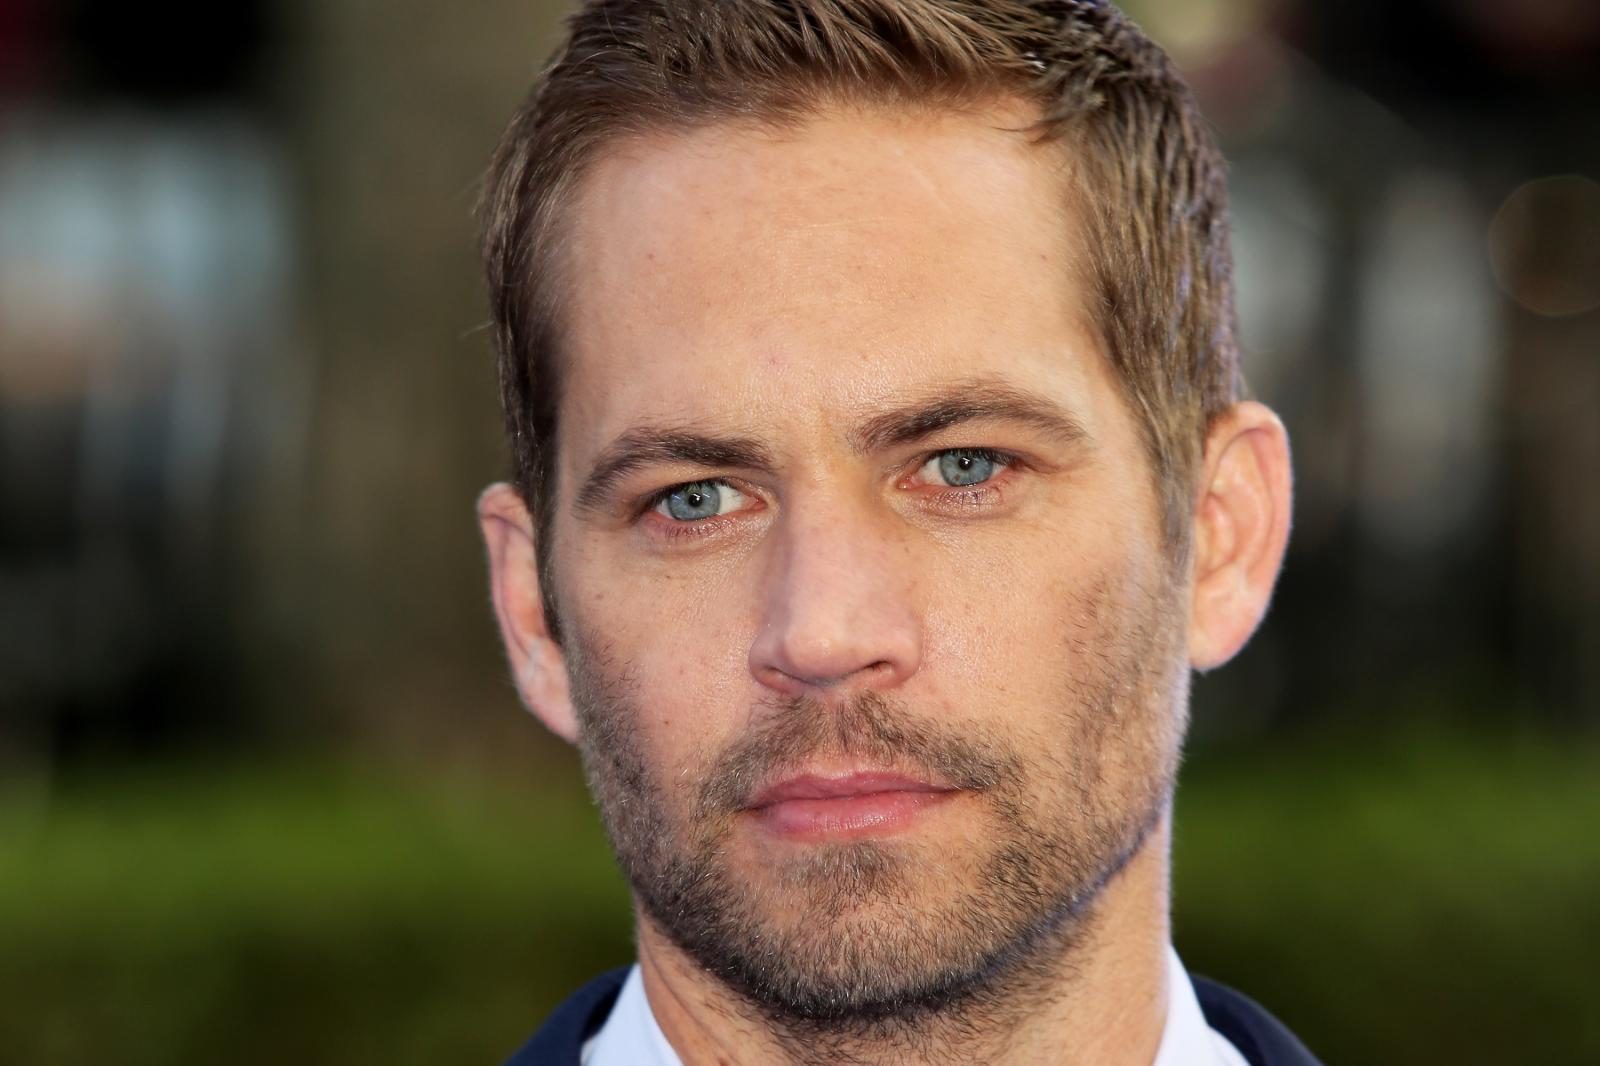 Fast Amp Furious Star Paul Walker Dead After Fatal Car